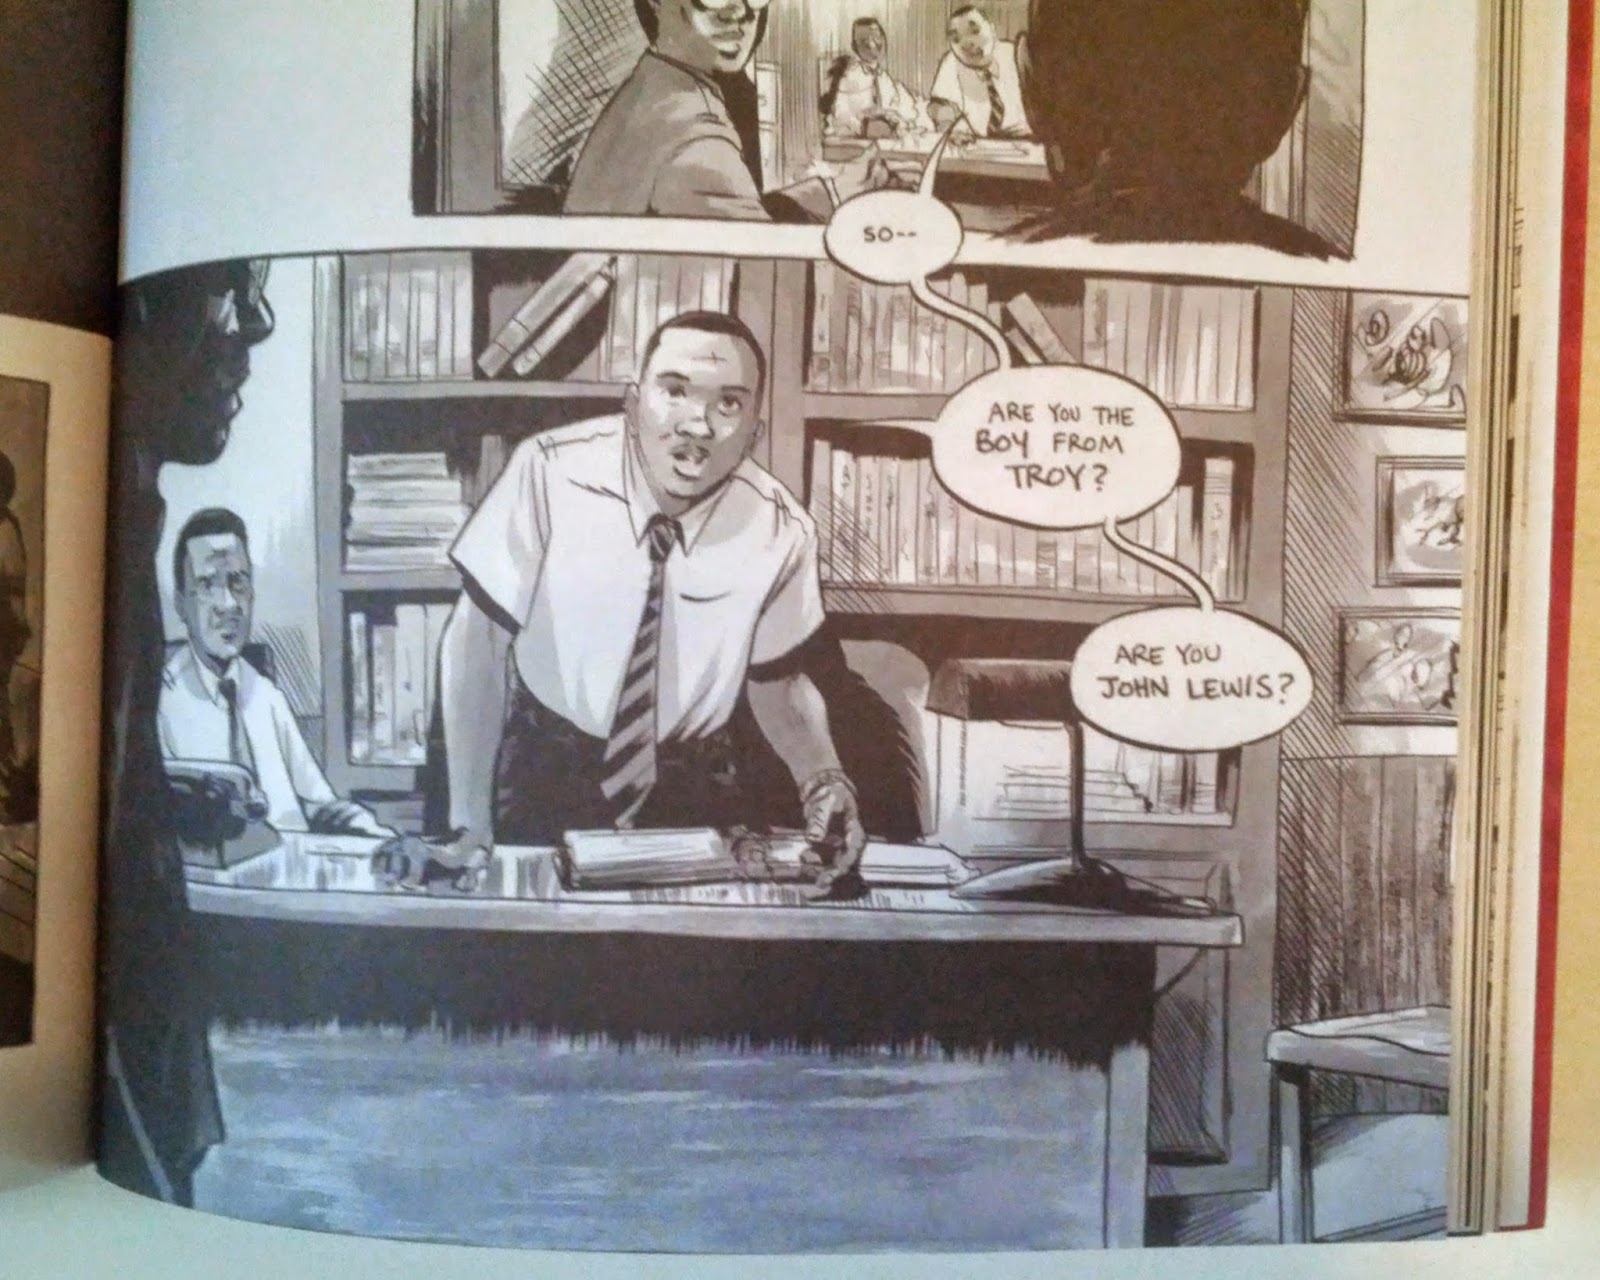 march book one john lewis excerpt martin luther king jr.